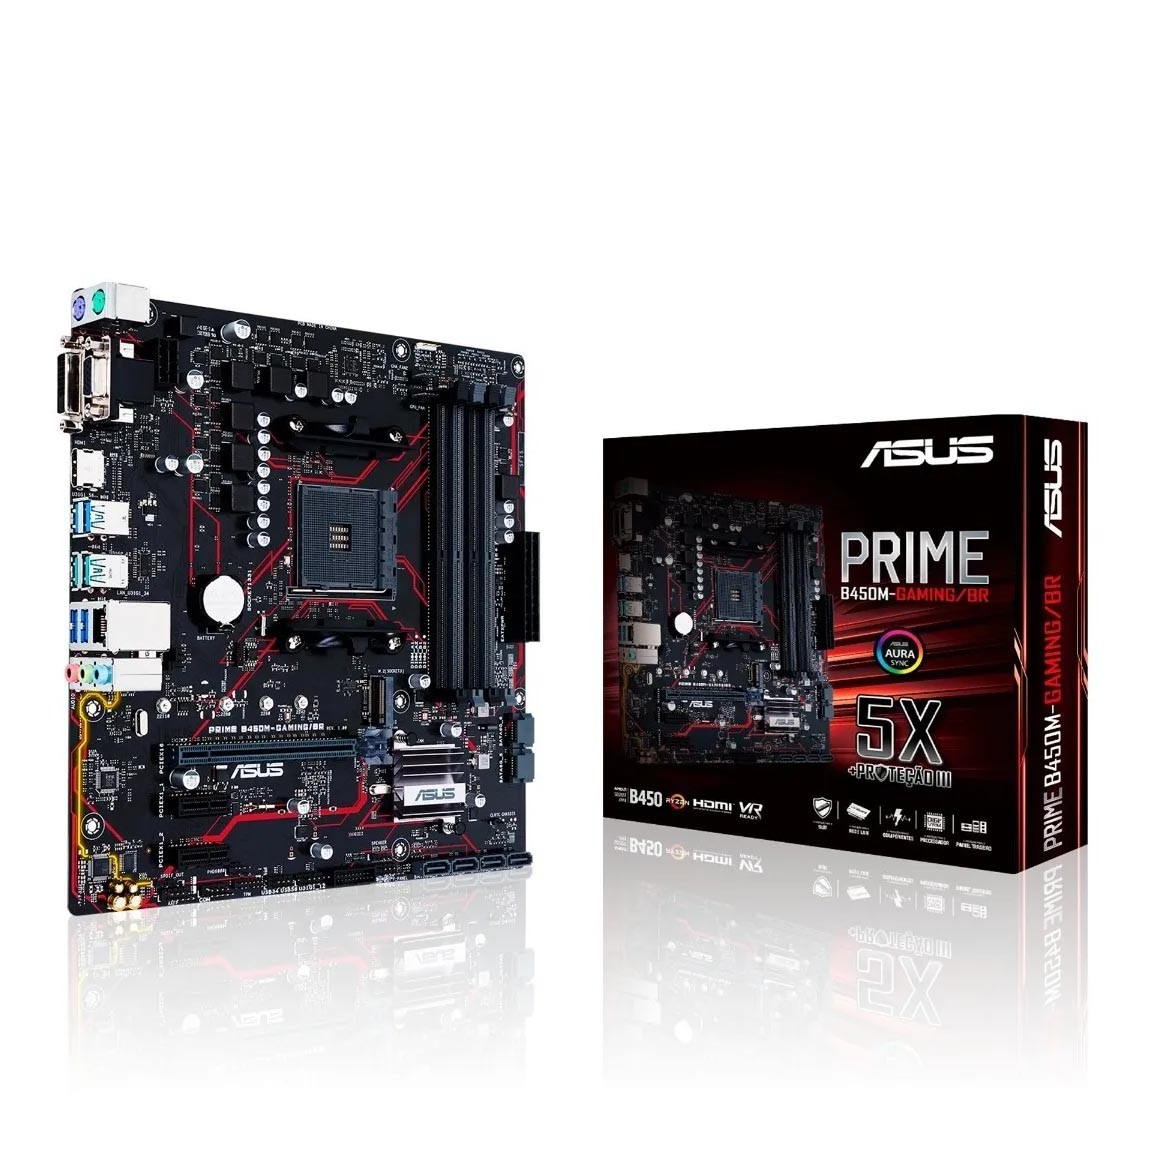 Placa Mãe Asus Prime Gaming (90mb10h0-c1bay0) Am4 Ddr4 - B450M-GAMING/BR